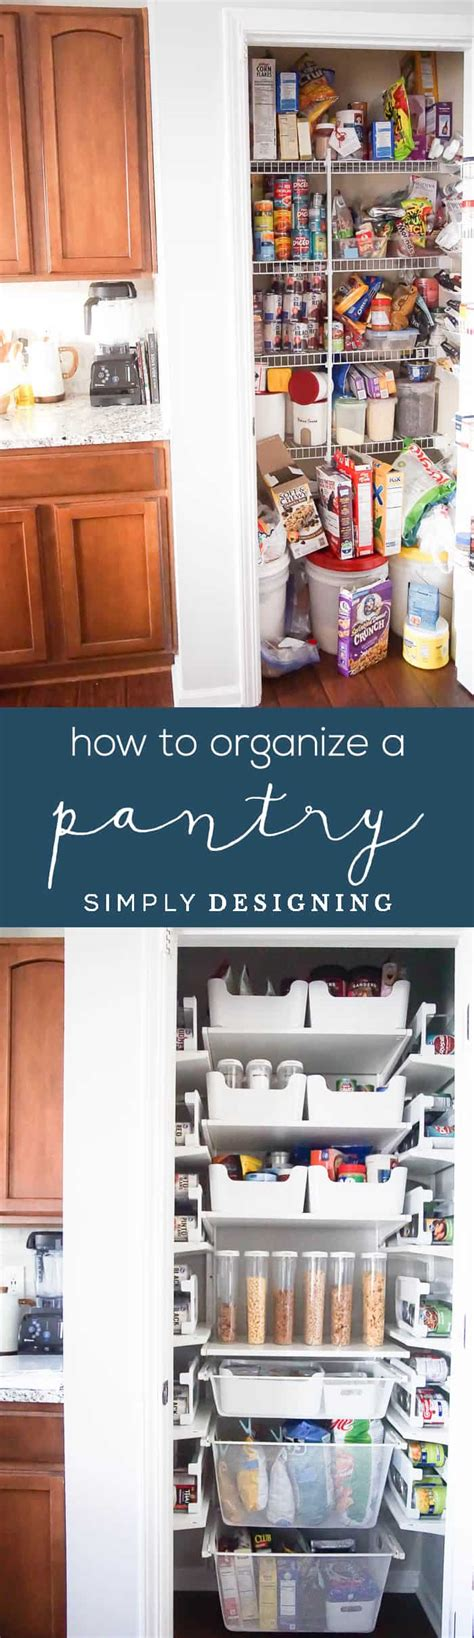 diy kitchen storage how to organize a closet the stairs pantry 3410